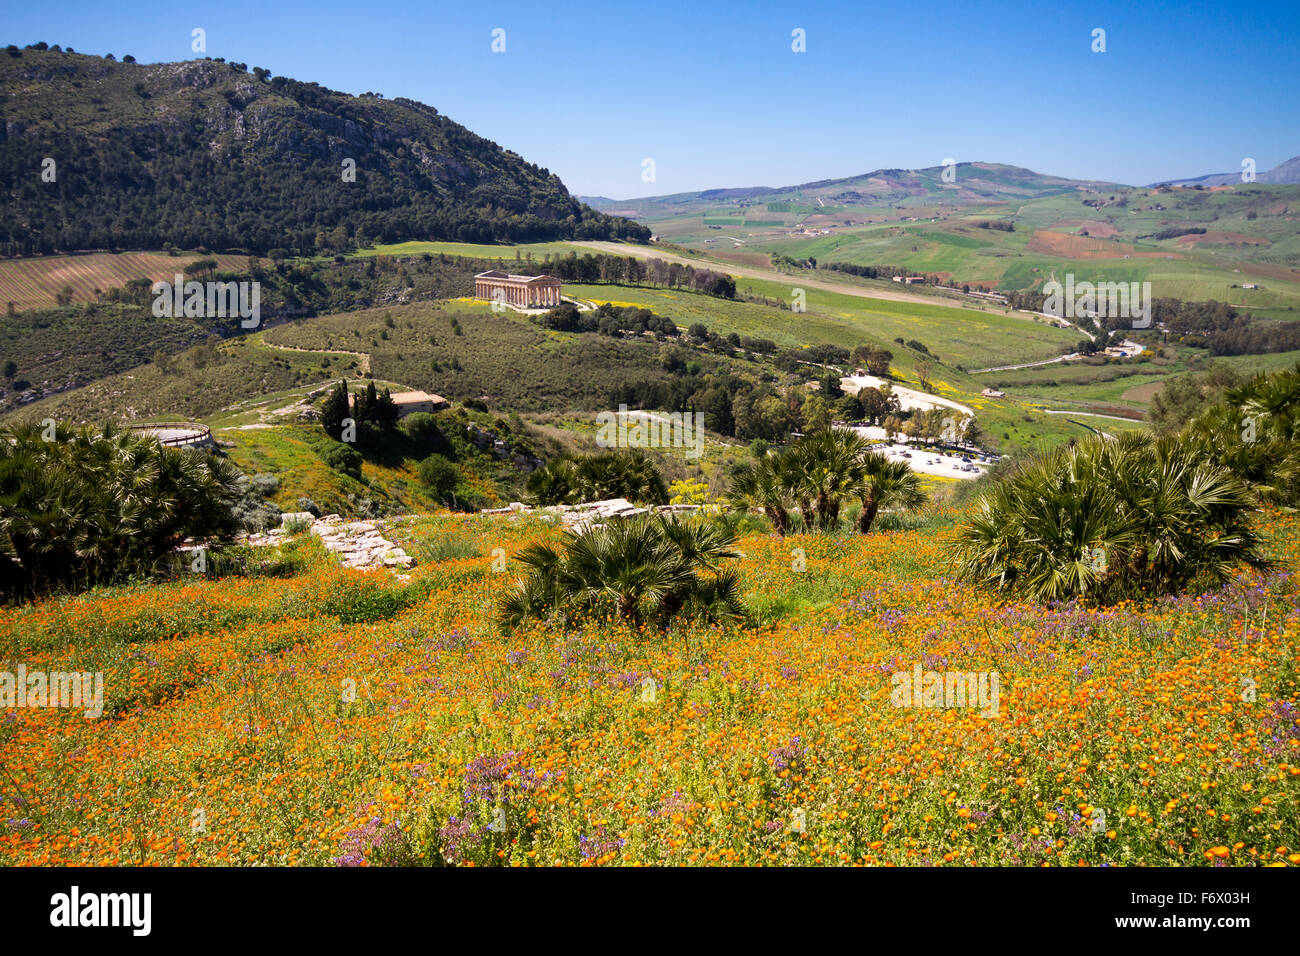 Blooming Flowers in the sicilian landscape, Ancient site of Segesta, Sicily, Italy - Stock Image